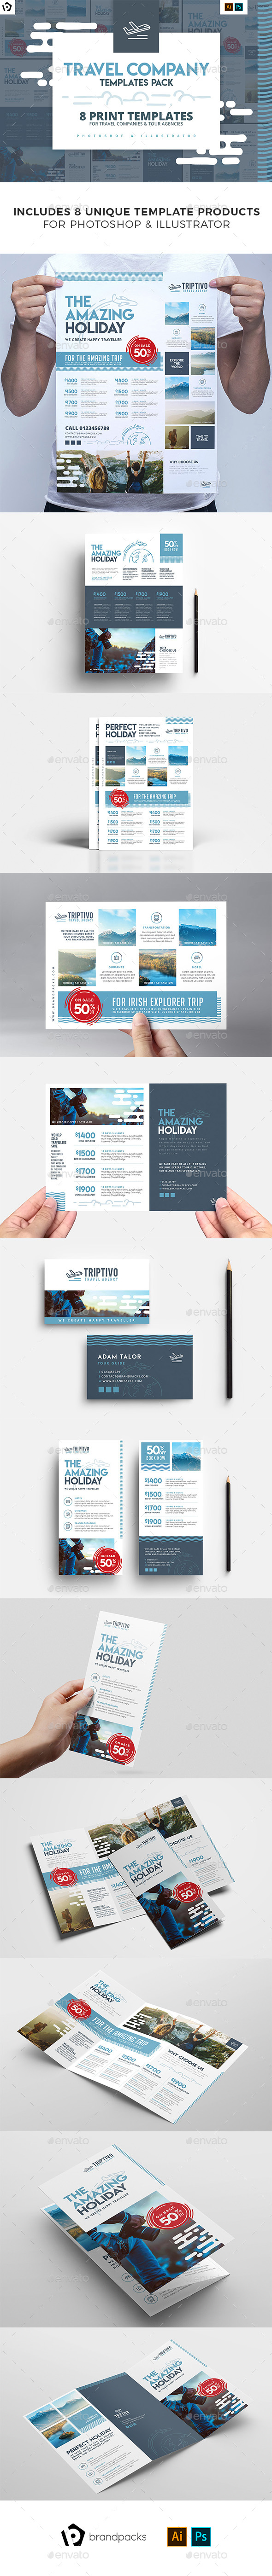 Travel Company Templates Bundle - Corporate Flyers